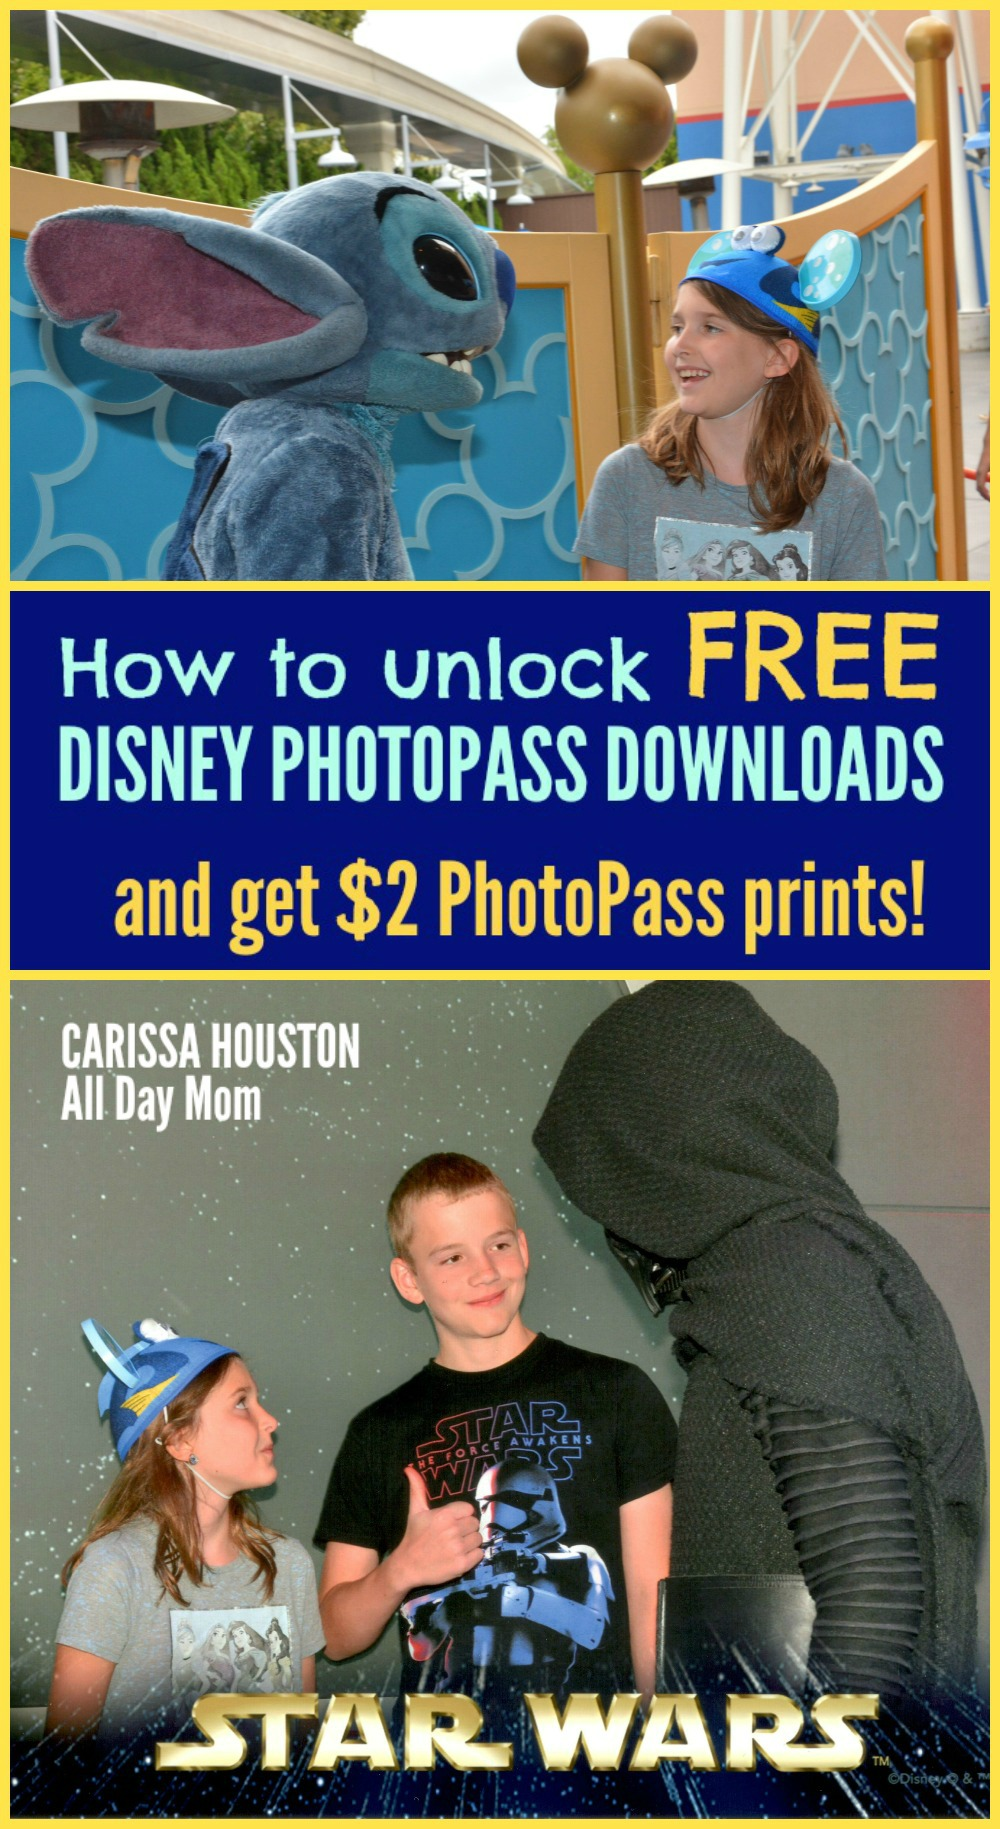 Disneyland freebies Free Disney PhotoPass downloads with Disney Visa! Disney Character Meet & Greet at Disneyland with Stitch and Kylo Ren!